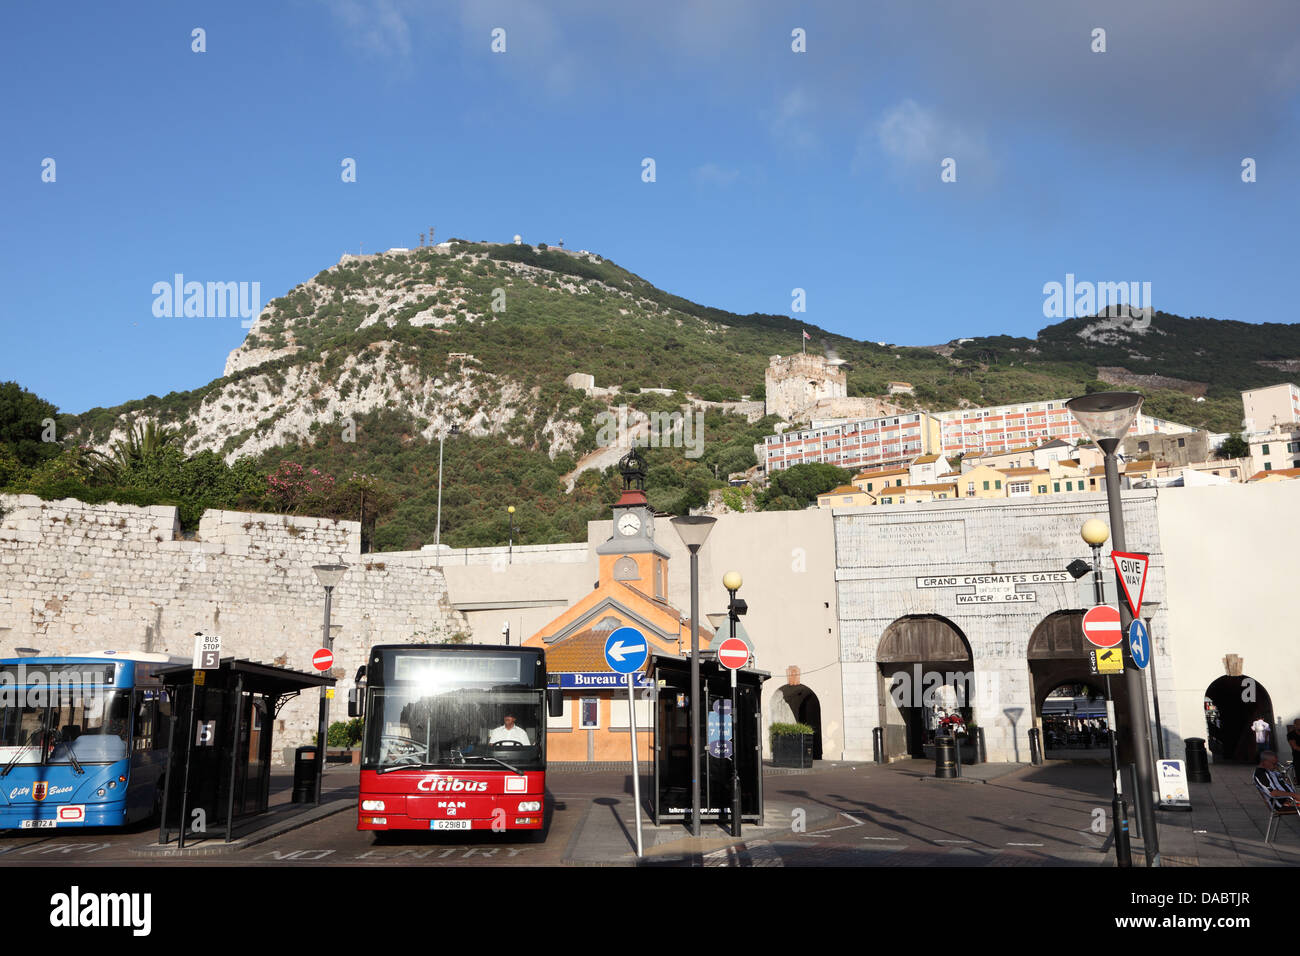 Bus station at Grand Casemates Gates in Gibraltar - Stock Image